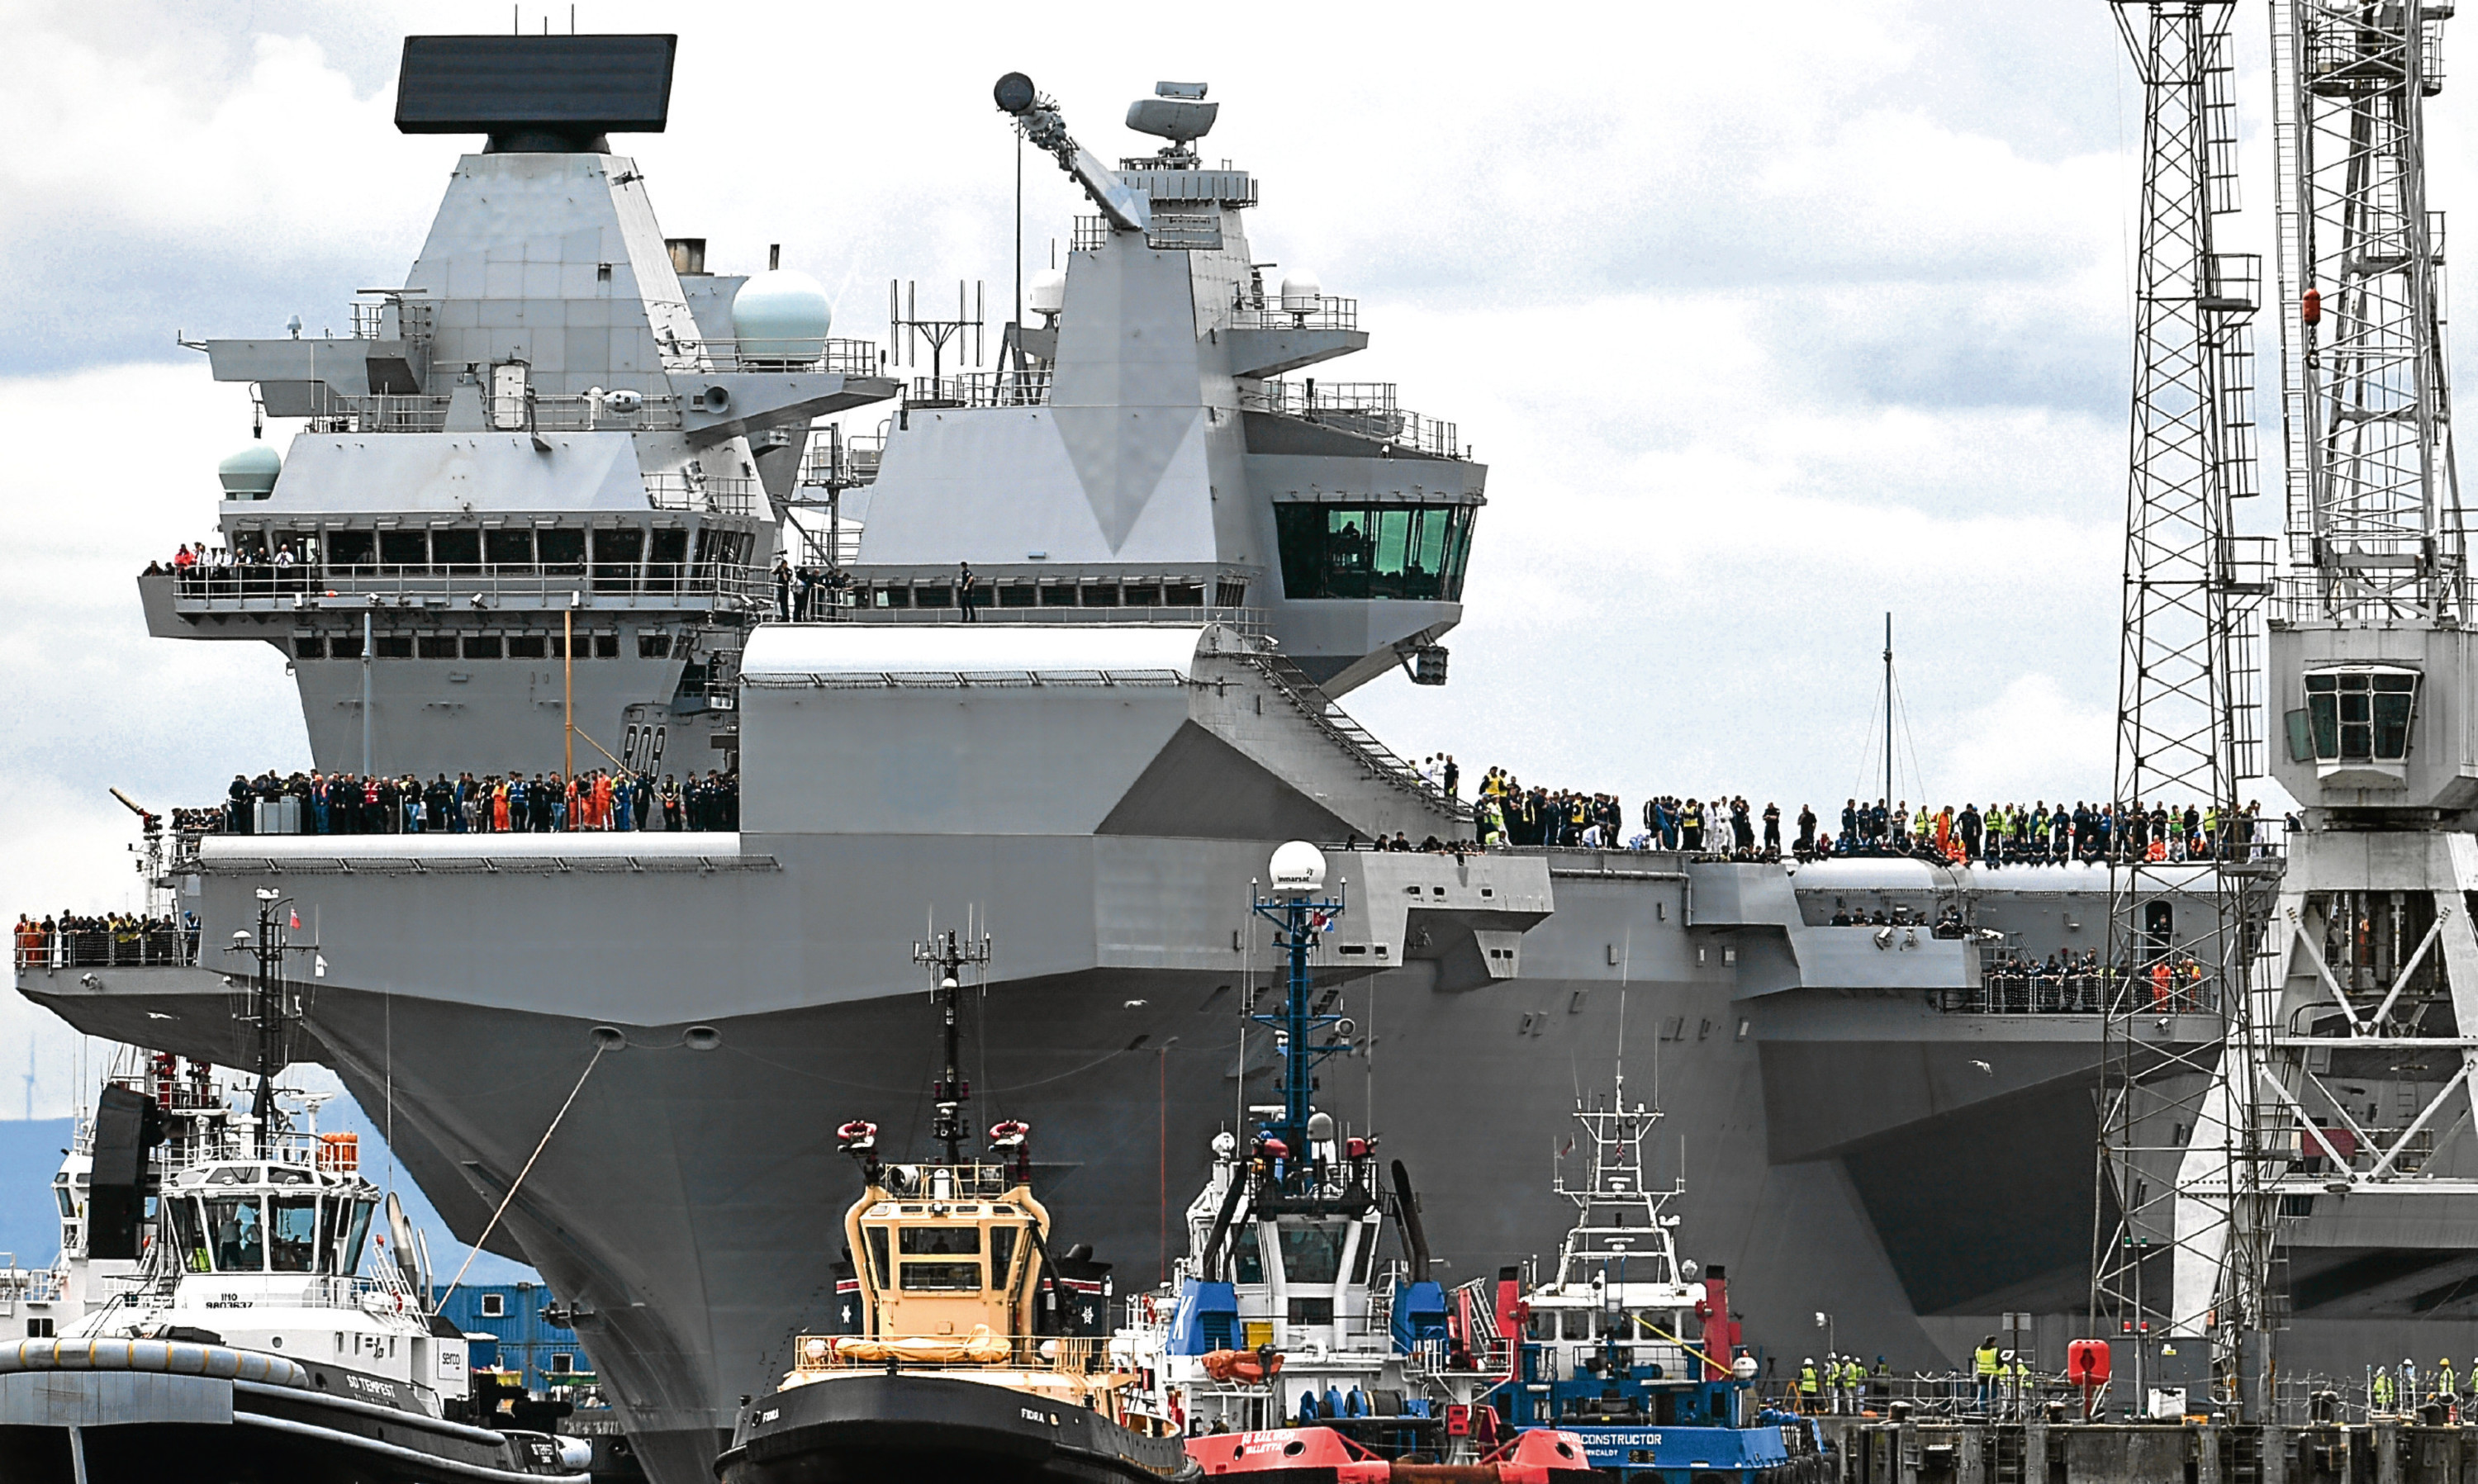 The Royal Navy aircraft carrier Queen Elizabeth pictured at Rosyth.